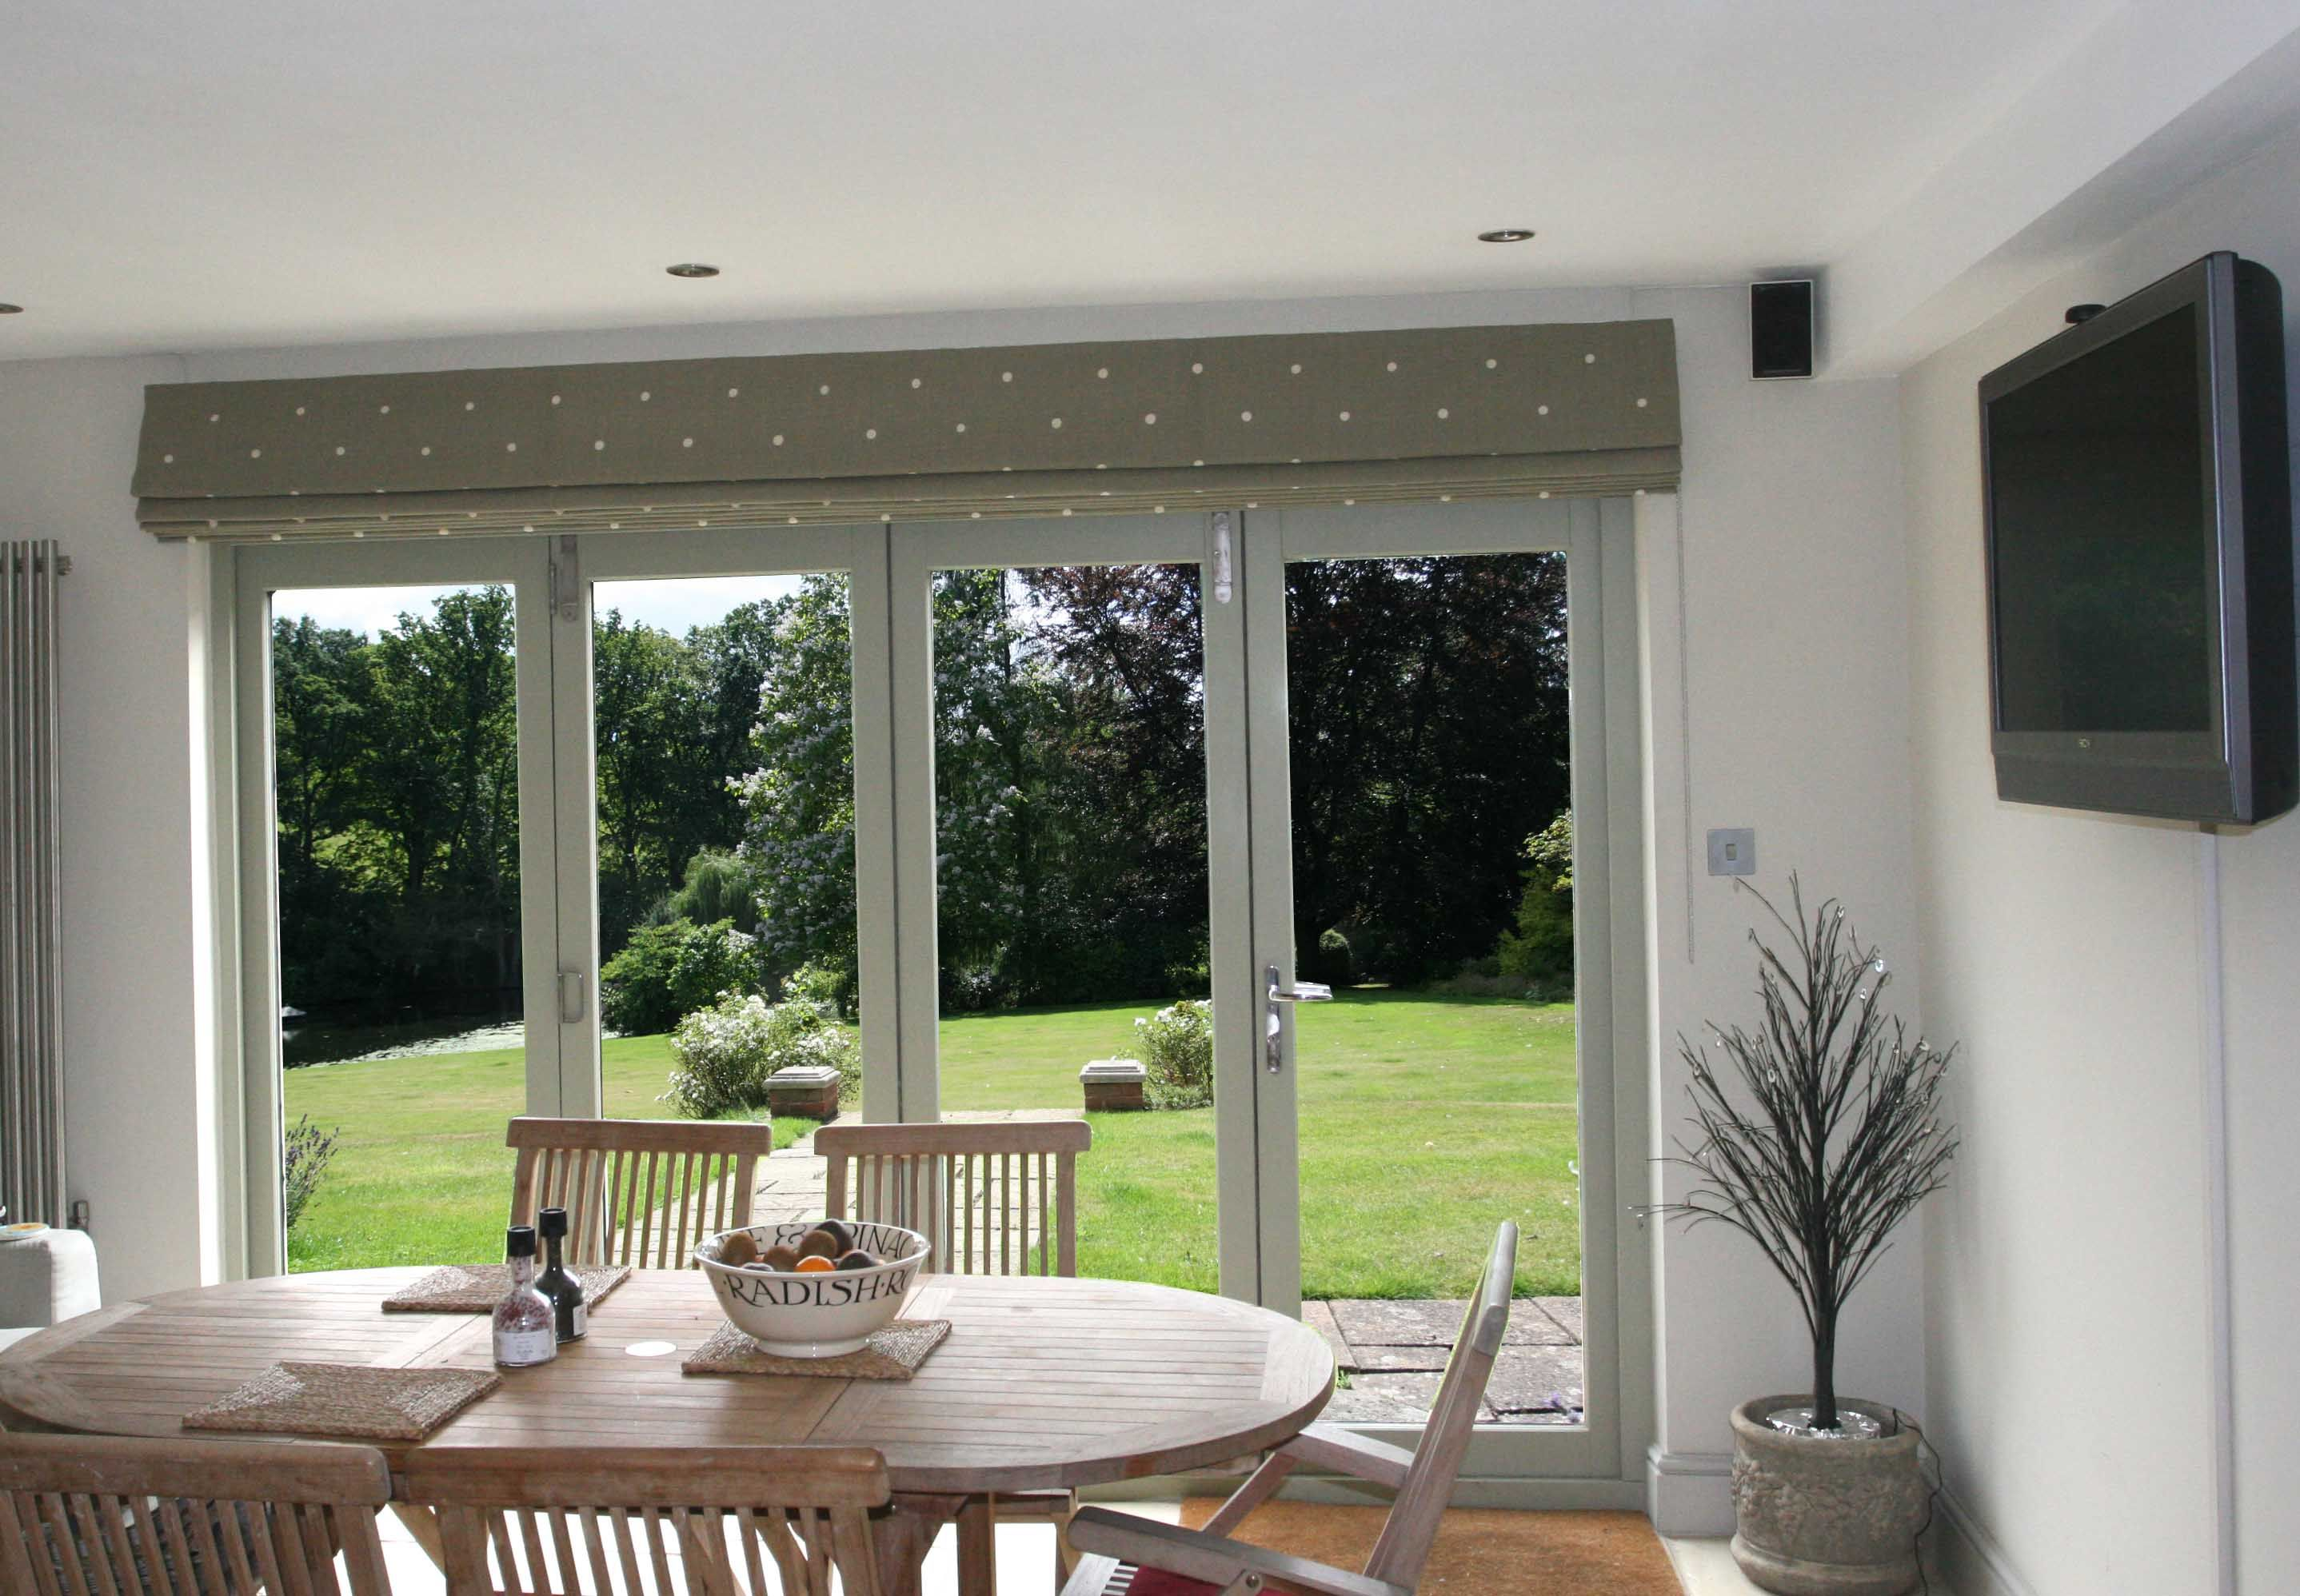 Roman Blind in Moghul Jinda Spot Shade Stone fitted to neatly